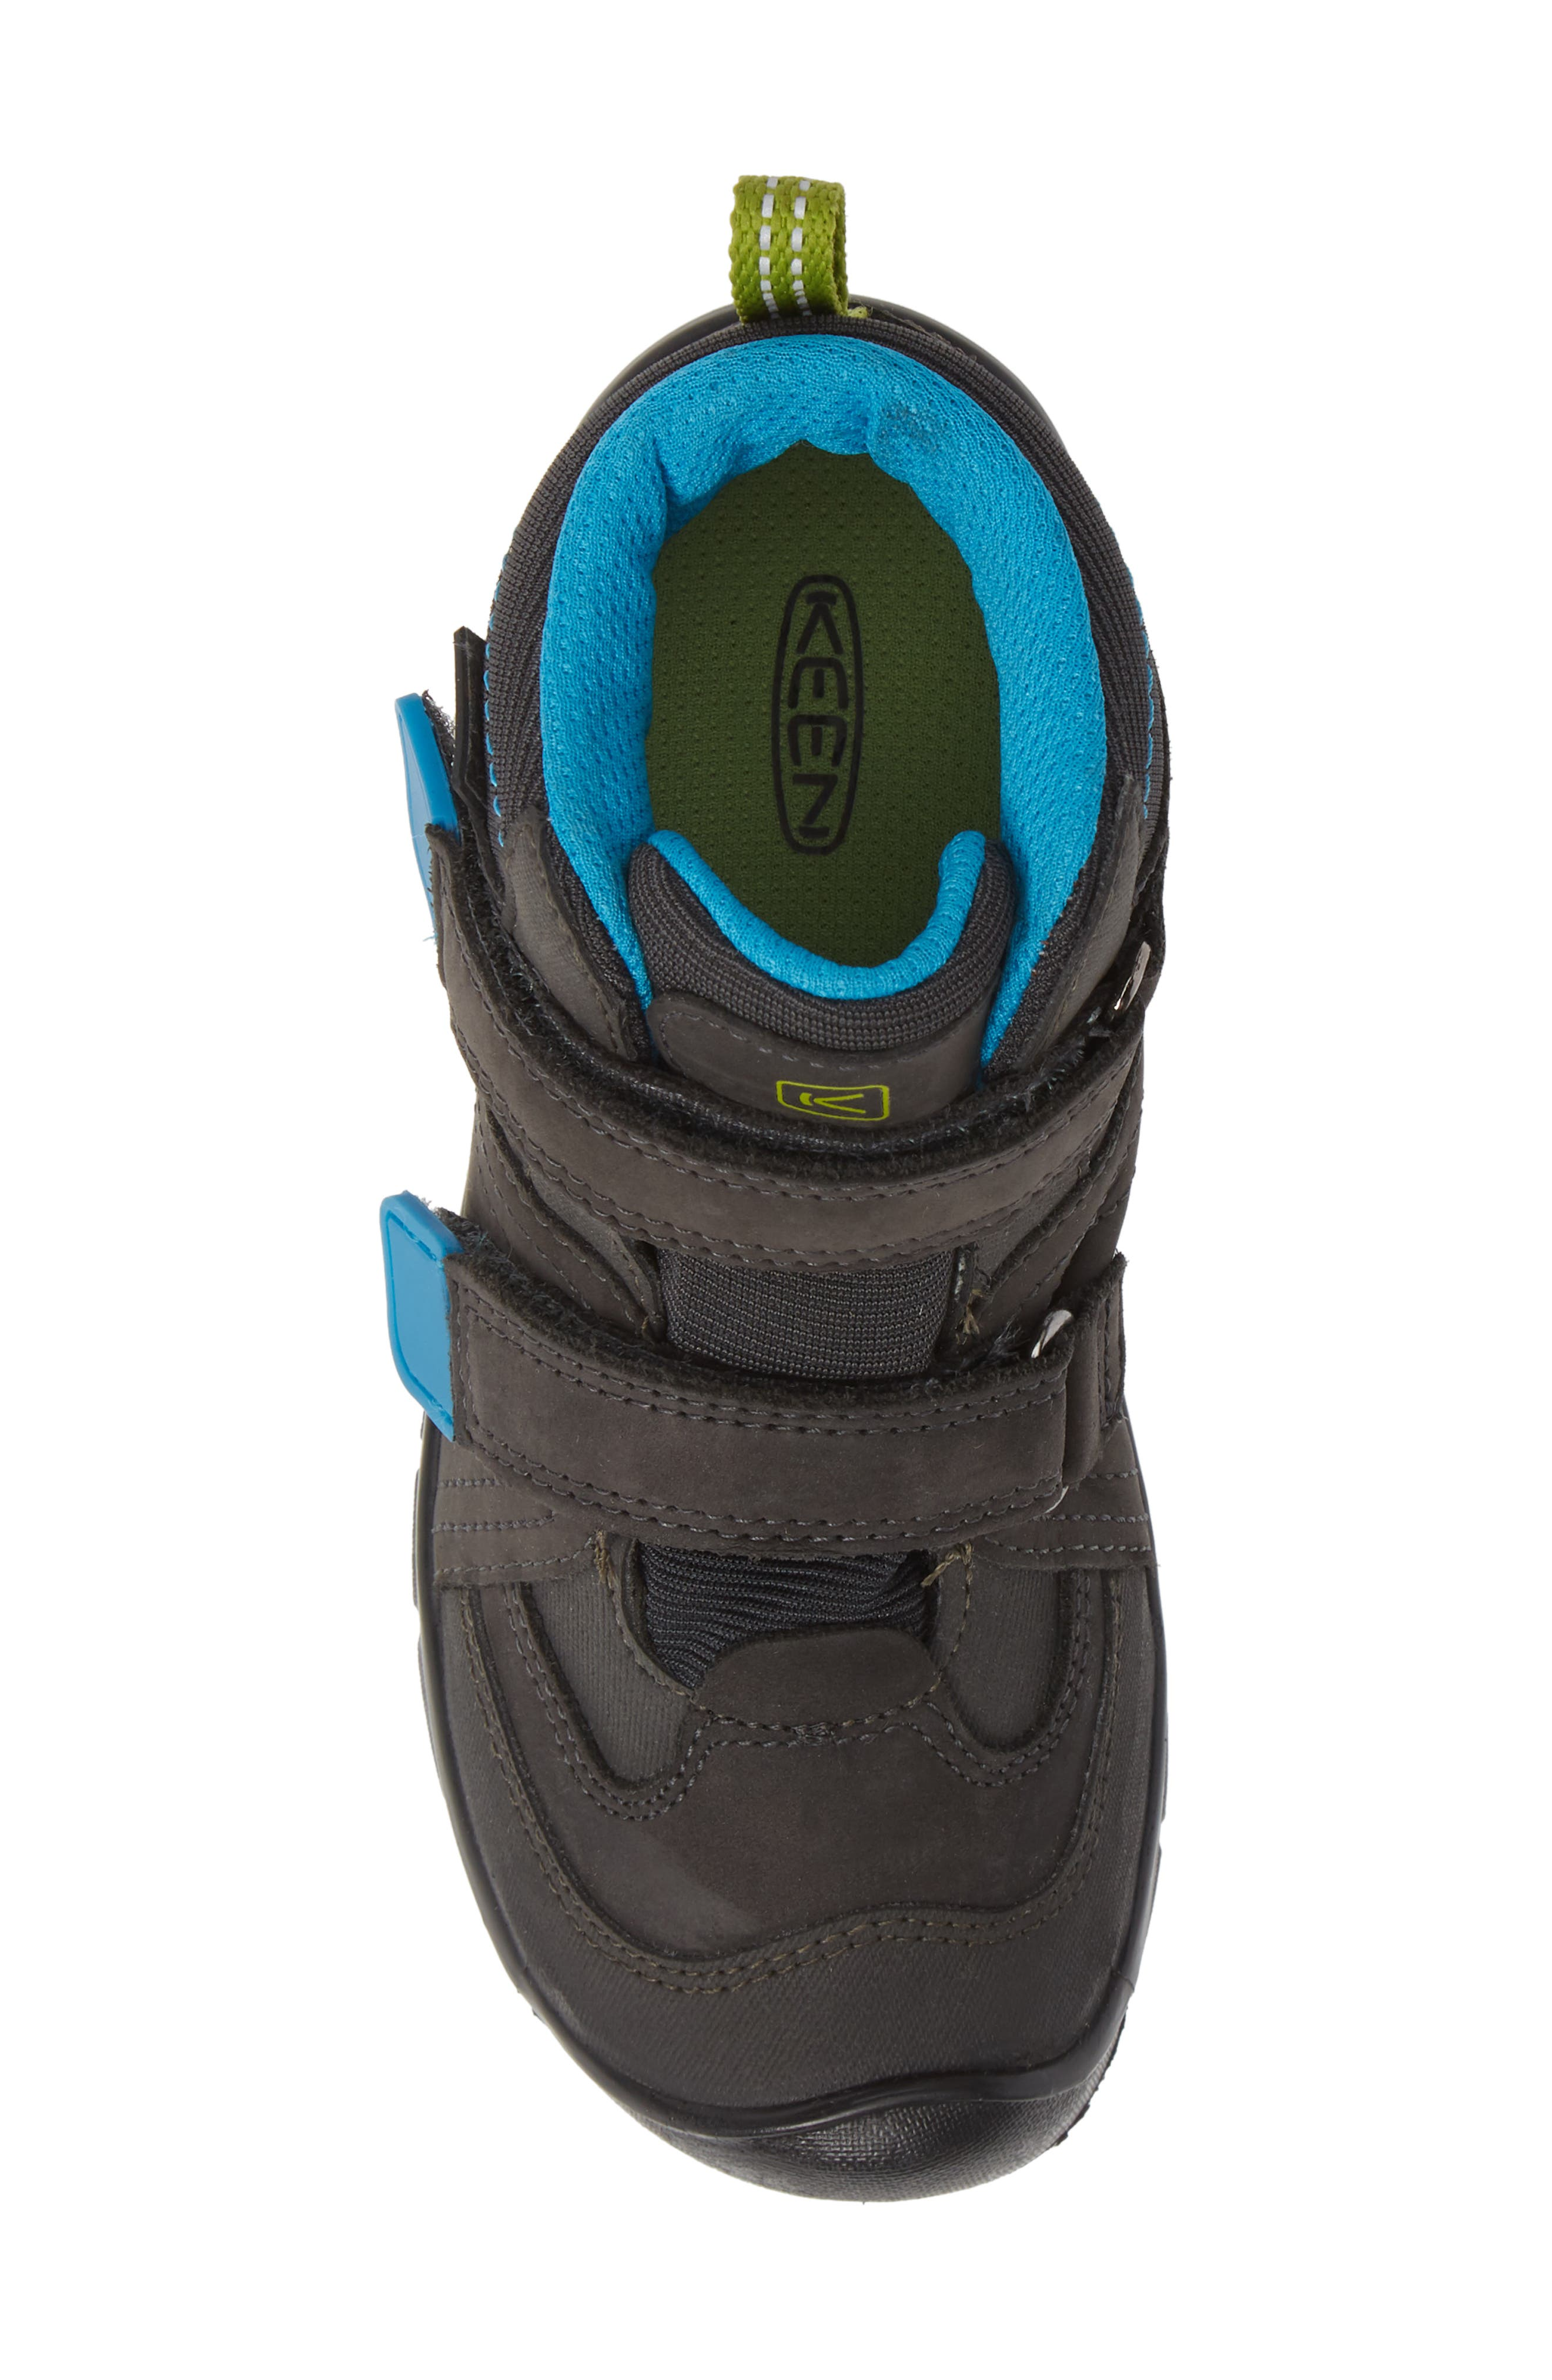 Hikeport Strap Waterproof Mid Boot,                             Alternate thumbnail 17, color,